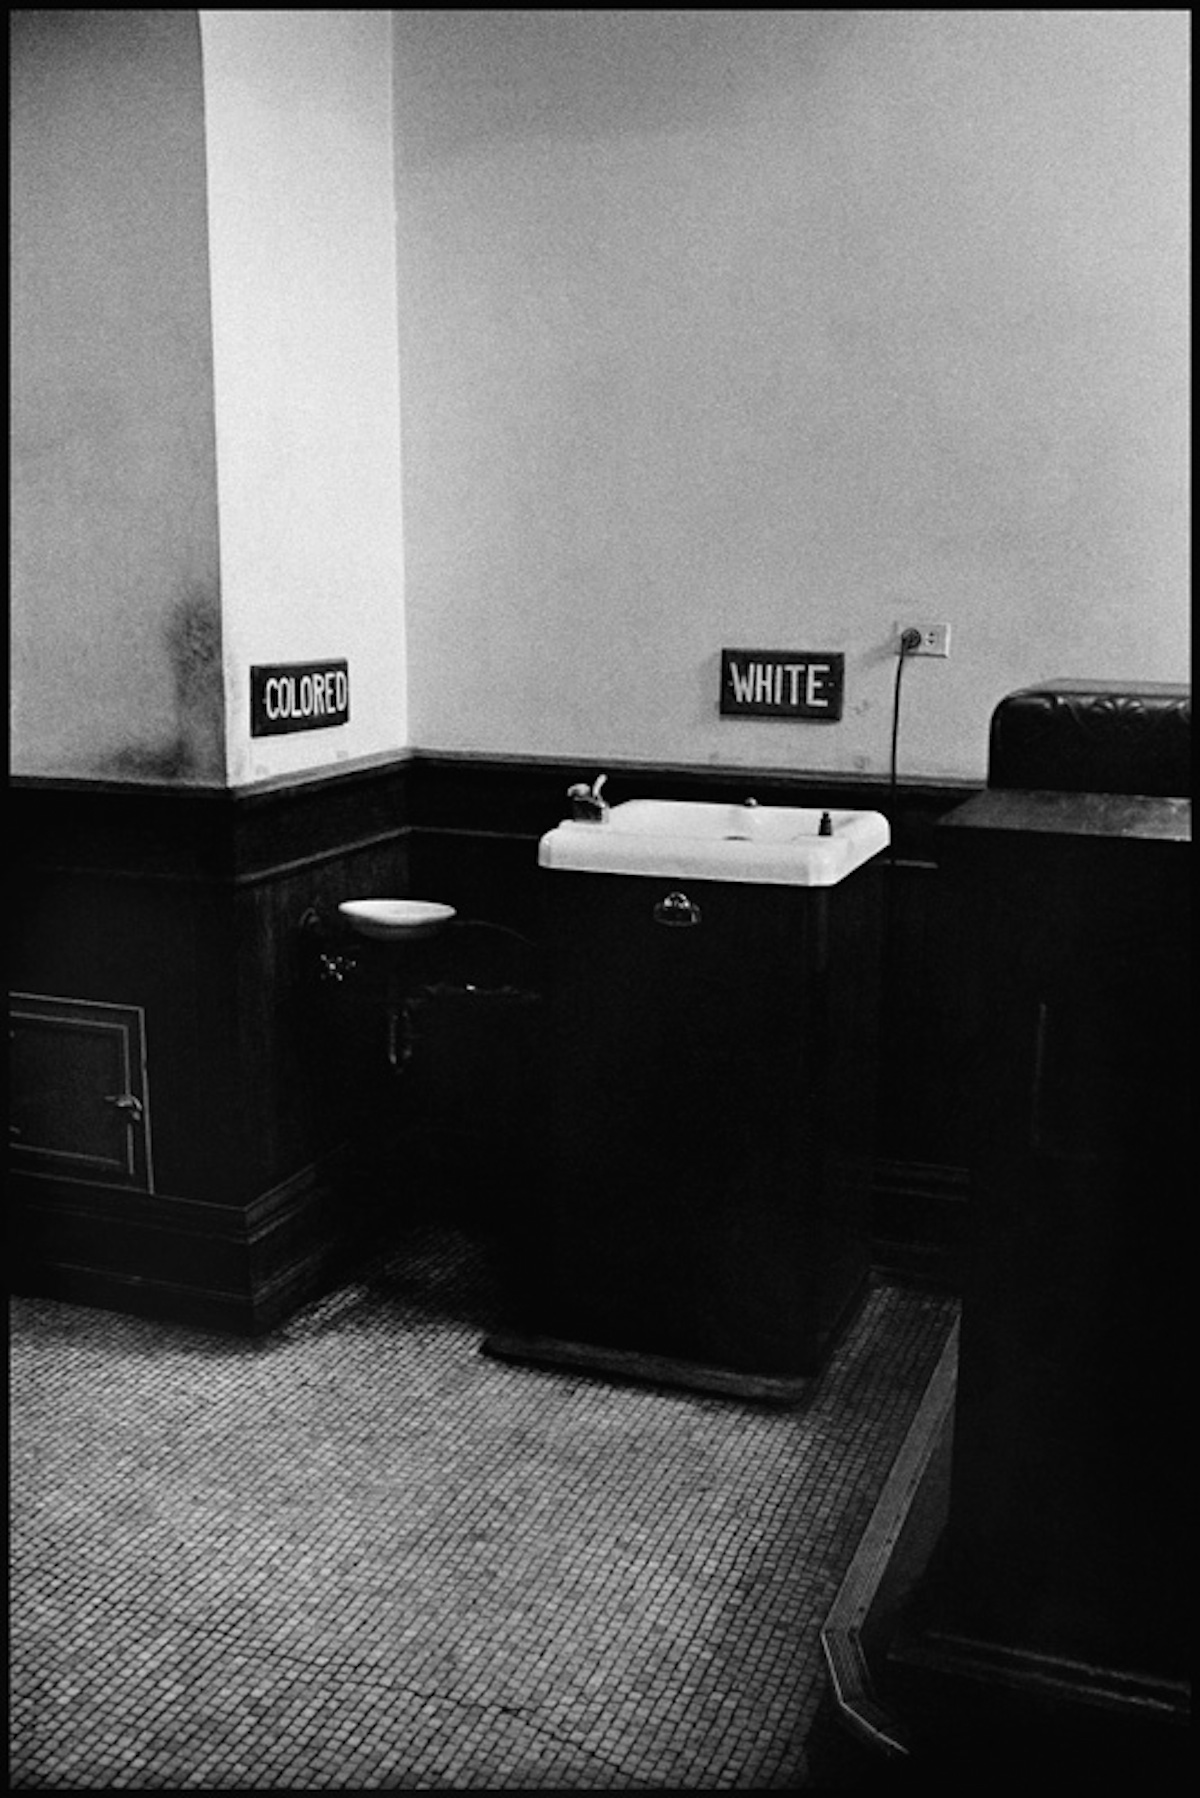 USA. Albany, Georgia. August 1963. Segregated drinking fountains in the county courthouse.